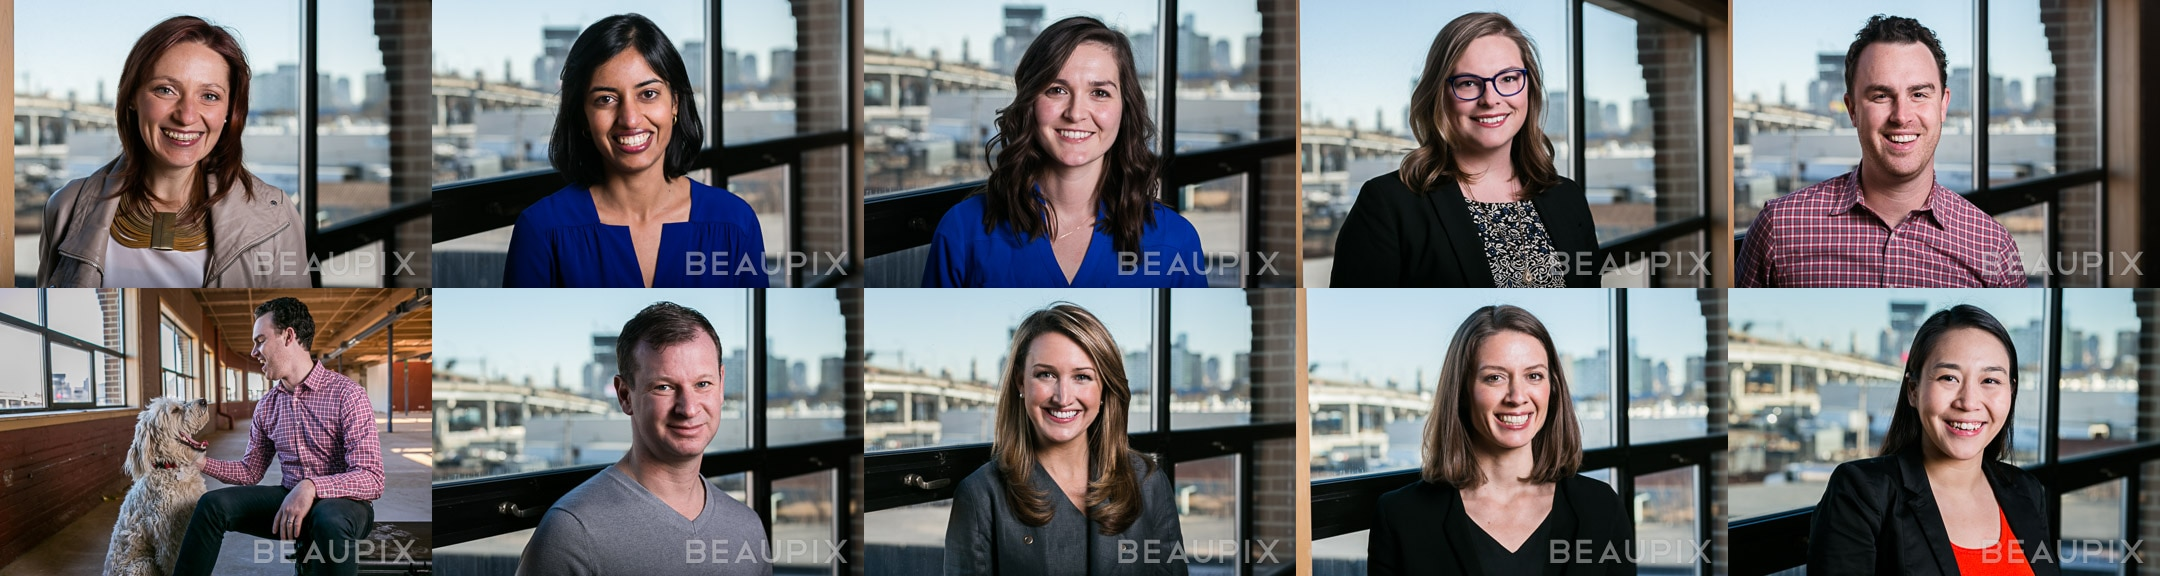 Boston corporate photographer for executive headshots